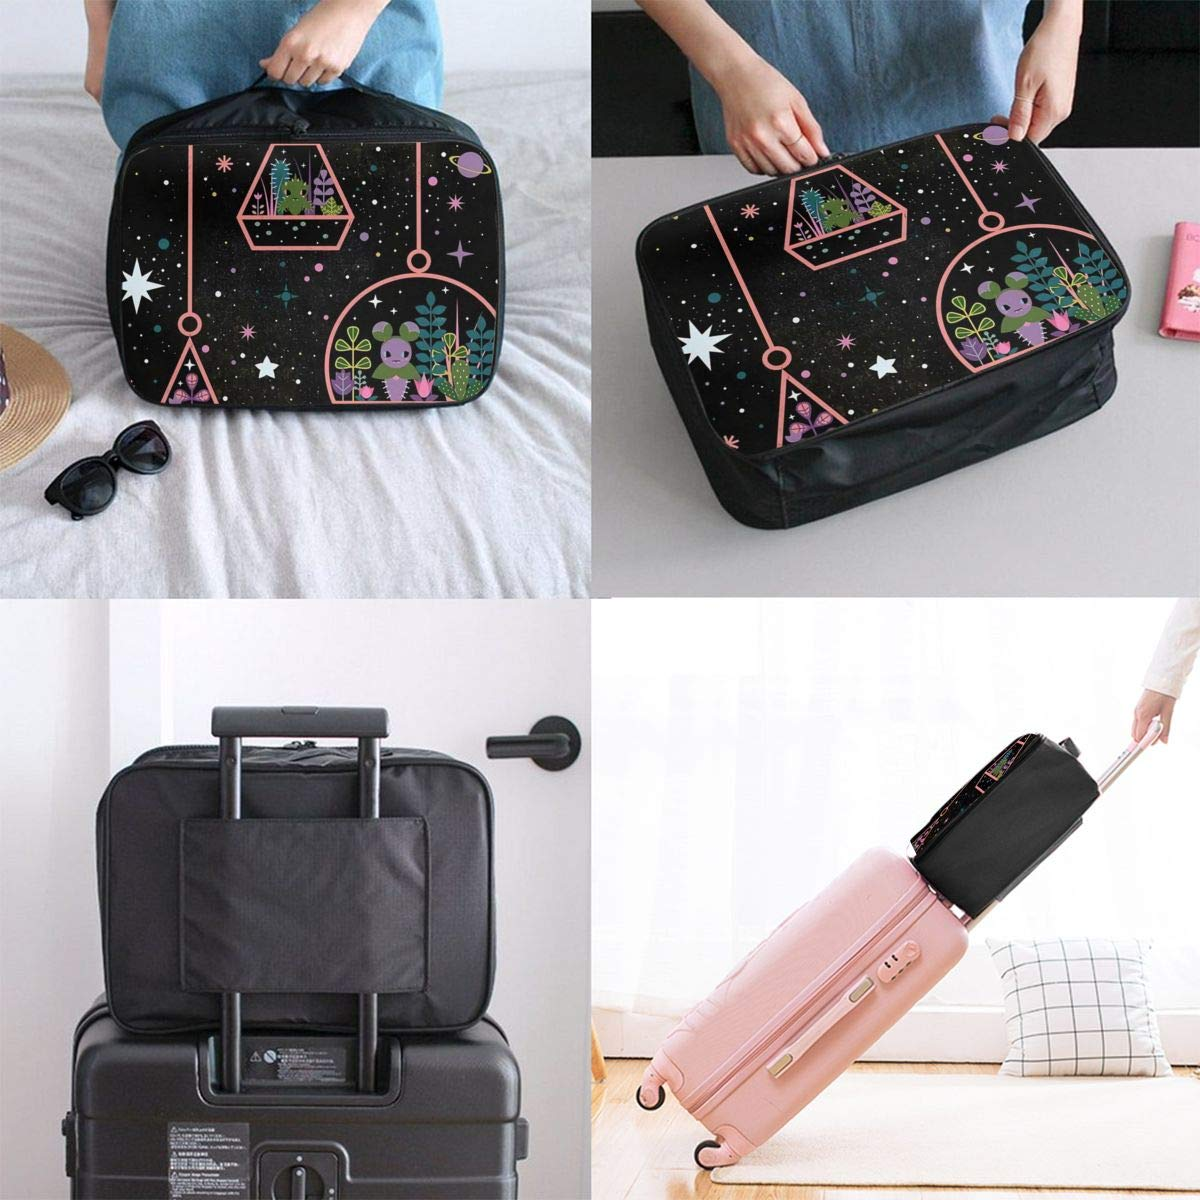 Cartoon Constellations Painting Travel Lightweight Waterproof Folding Storage Carry Luggage Duffle Tote Bag Large Capacity In Trolley Handle Bags 6x11x15 Inch